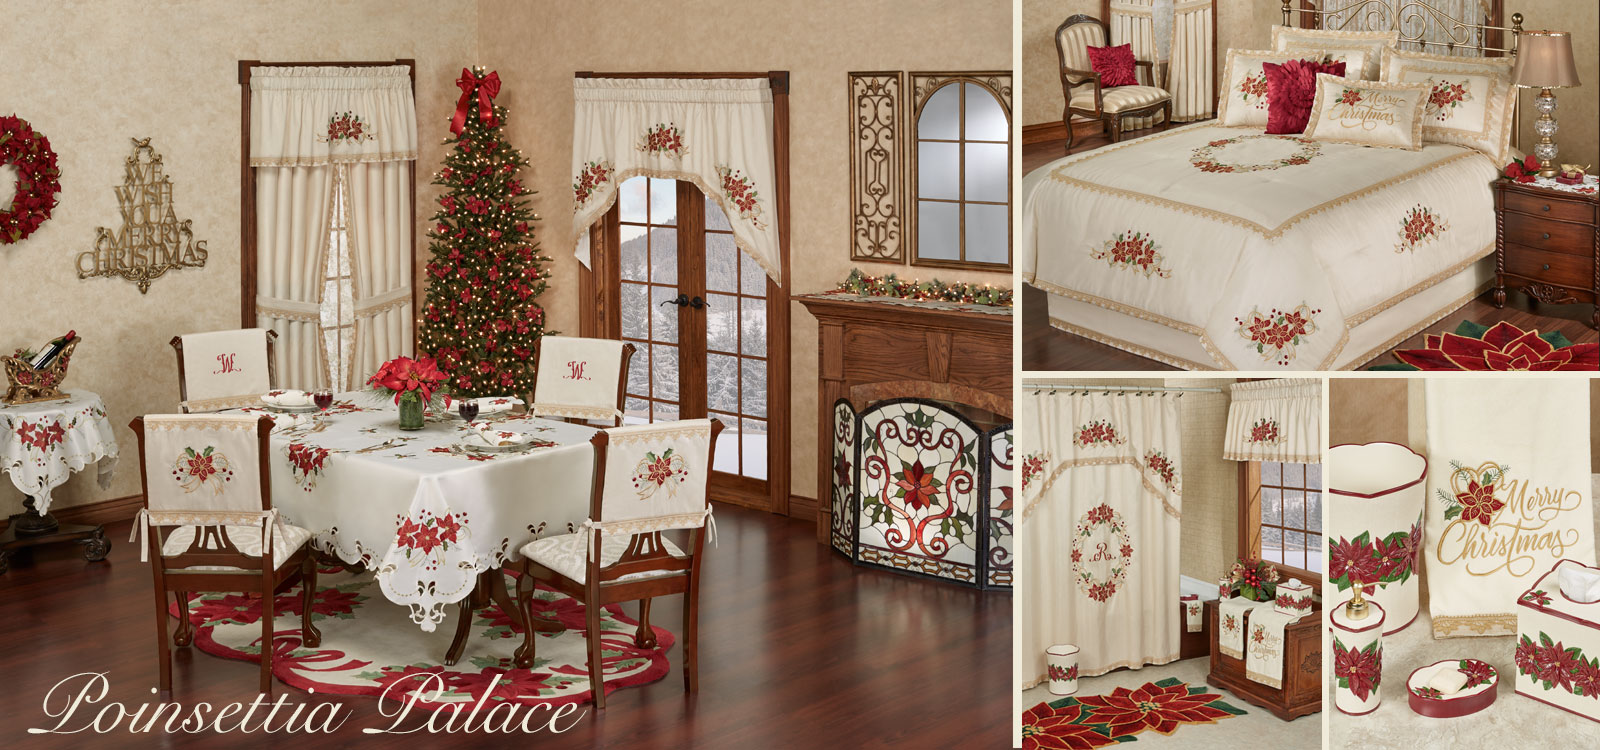 Poinsettia Palace Holiday Collection